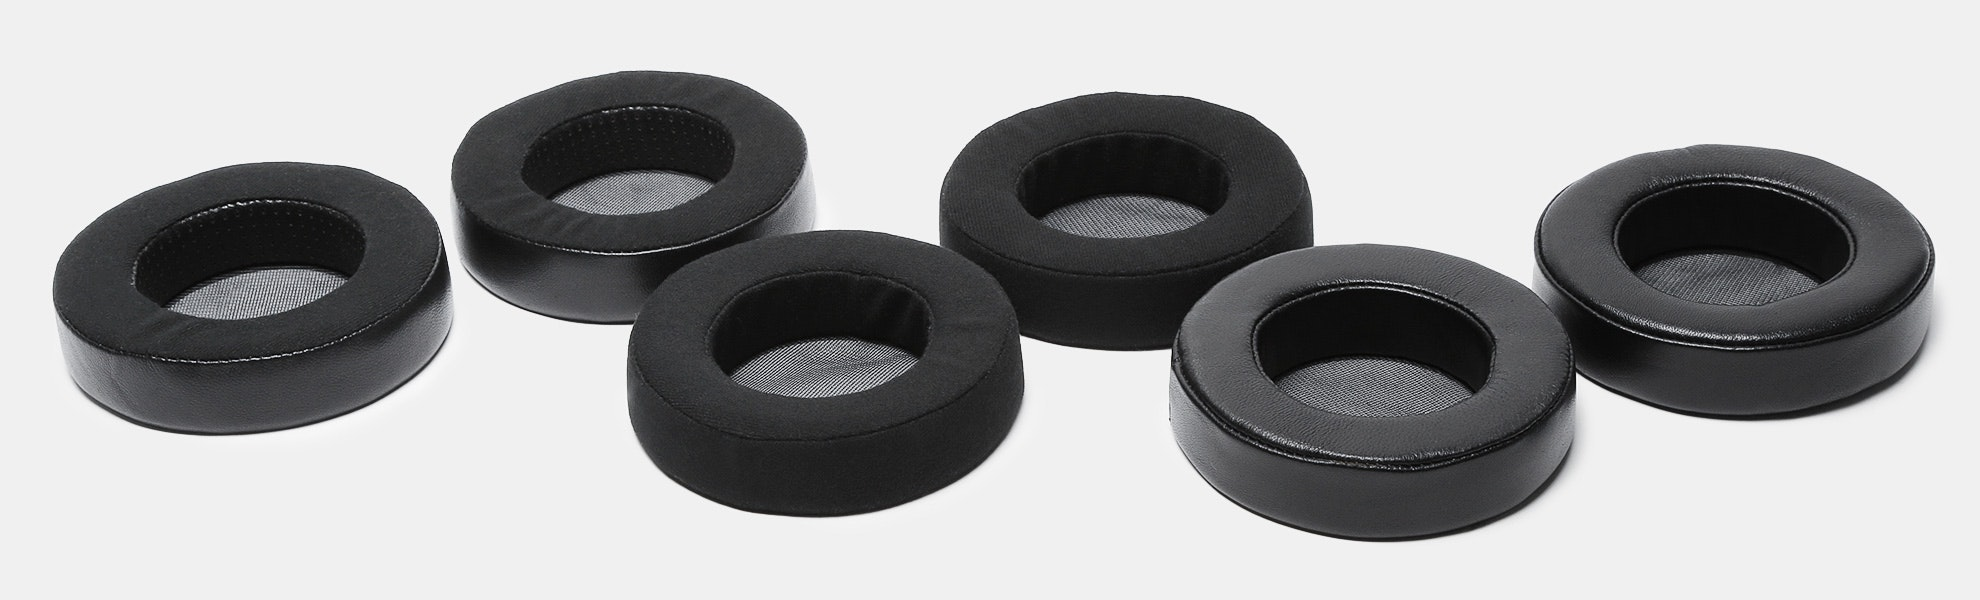 Dekoni Premium Earpads for AKG K7XX & More